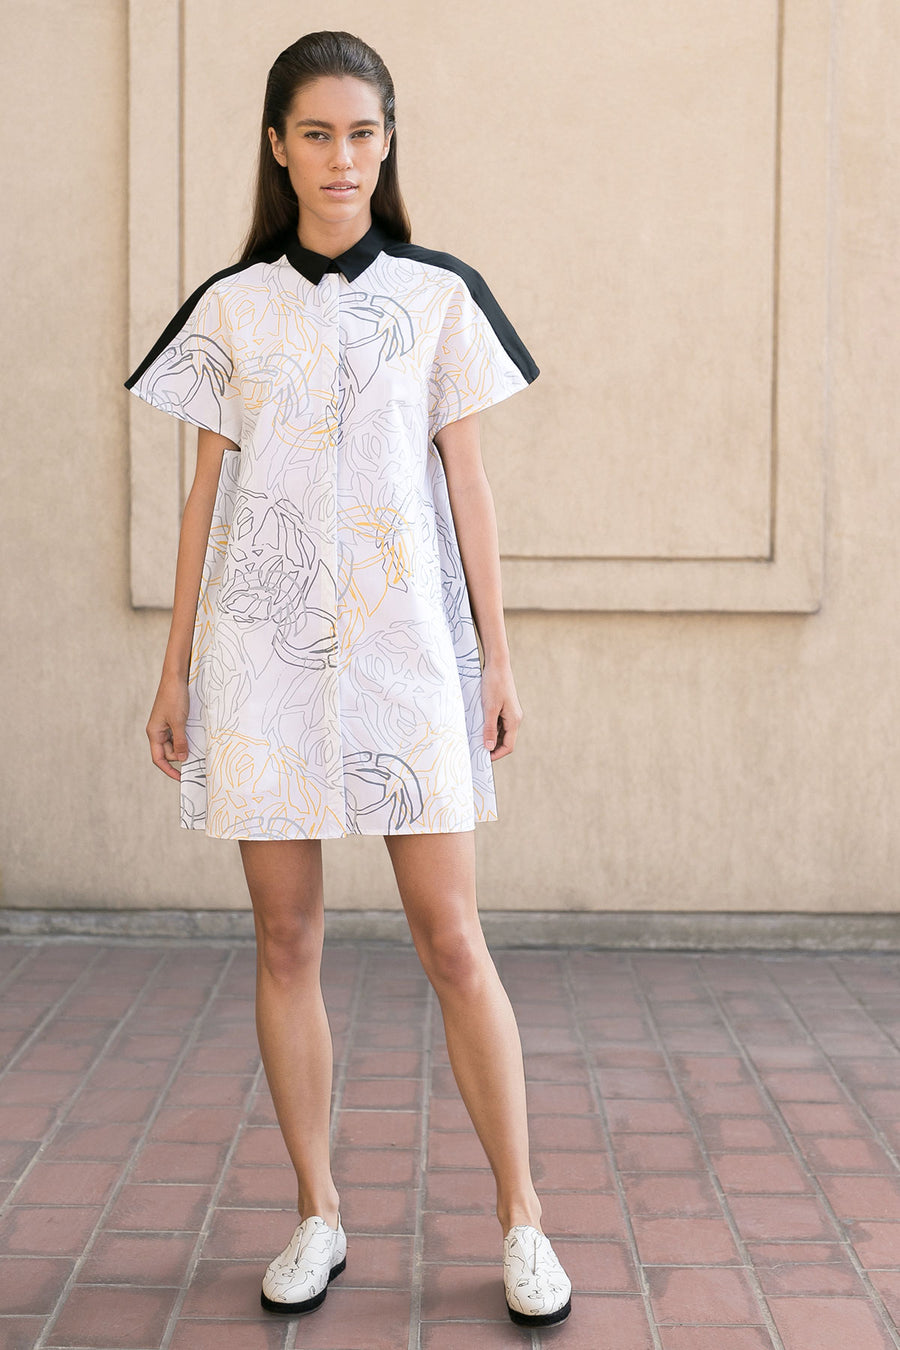 White Shirtdress by A.Oei Studio